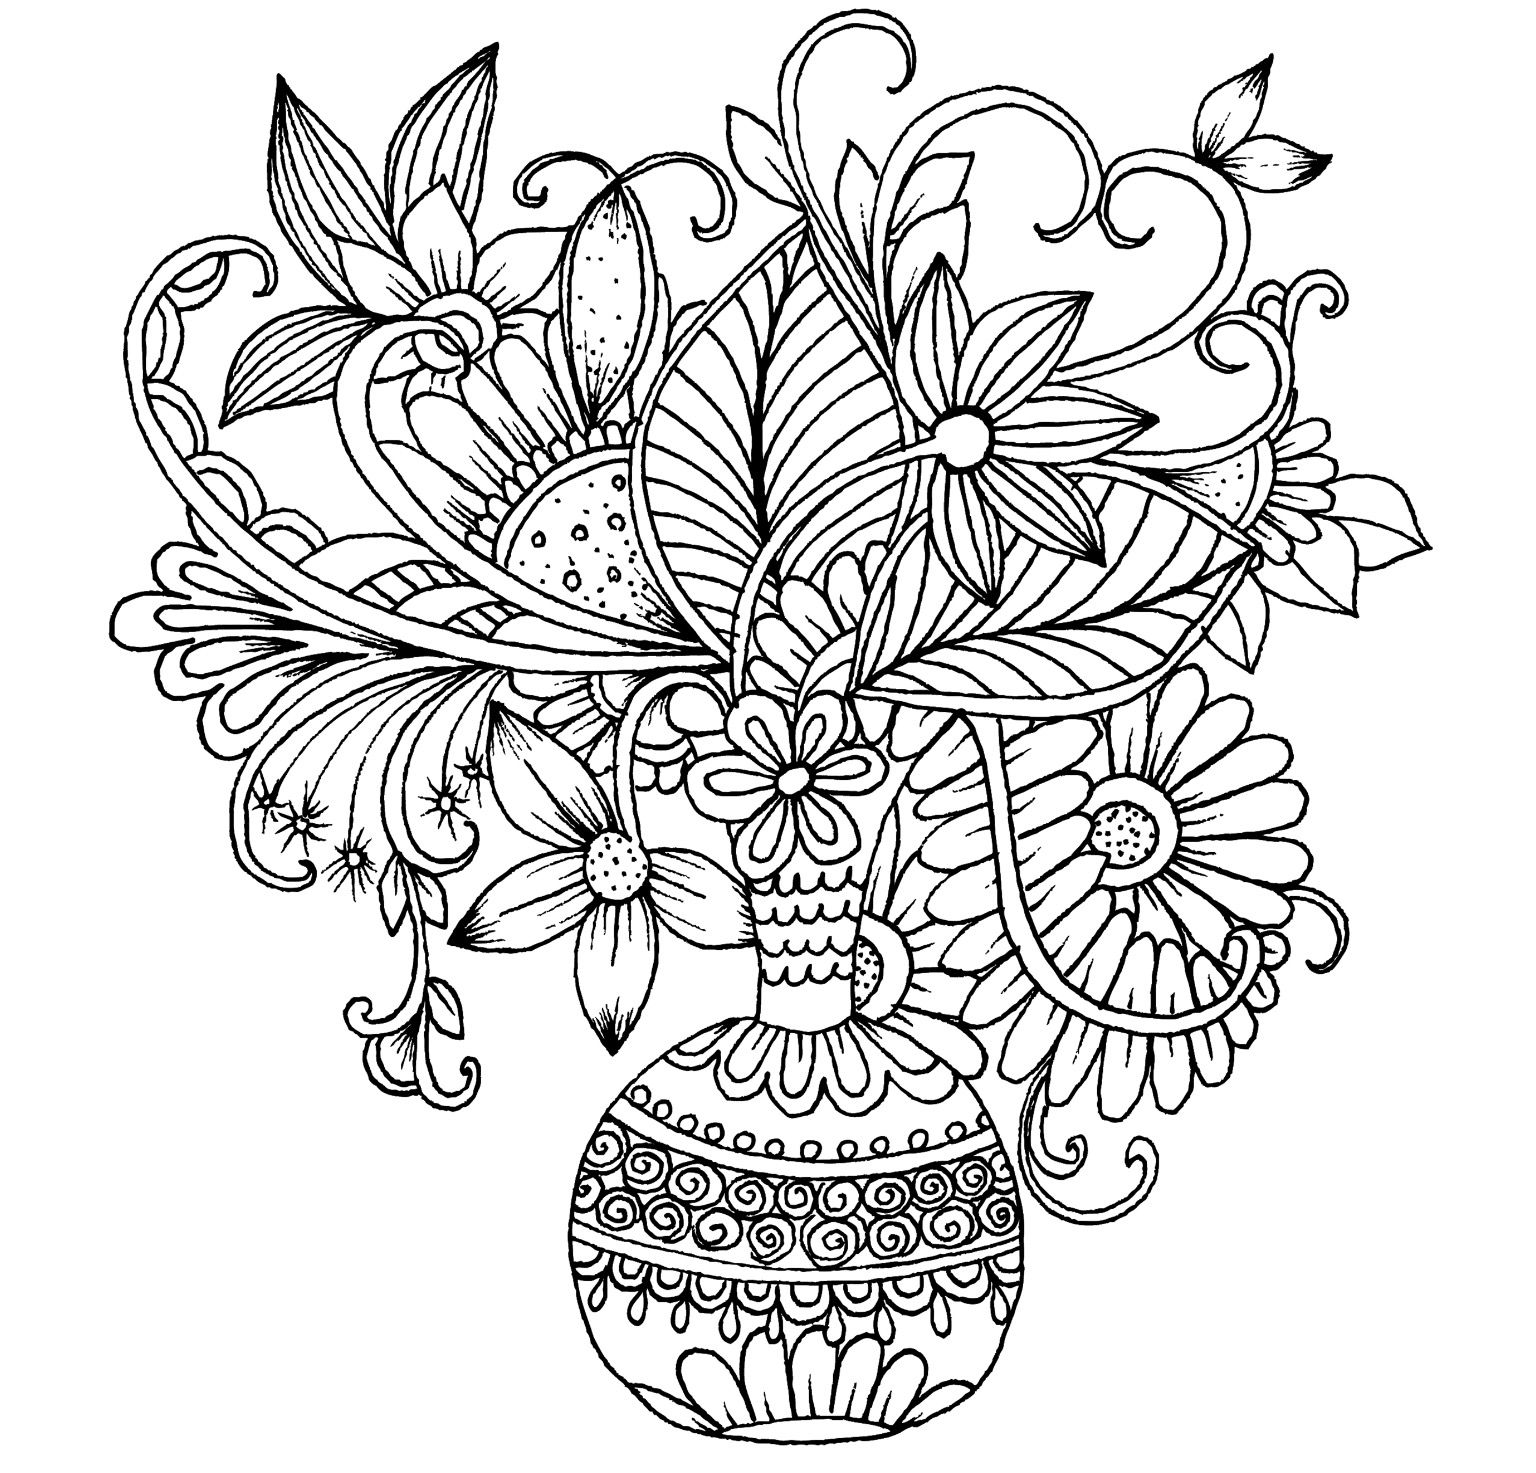 detailed flower coloring pages beautiful flowers detailed floral designs coloring book coloring pages detailed flower